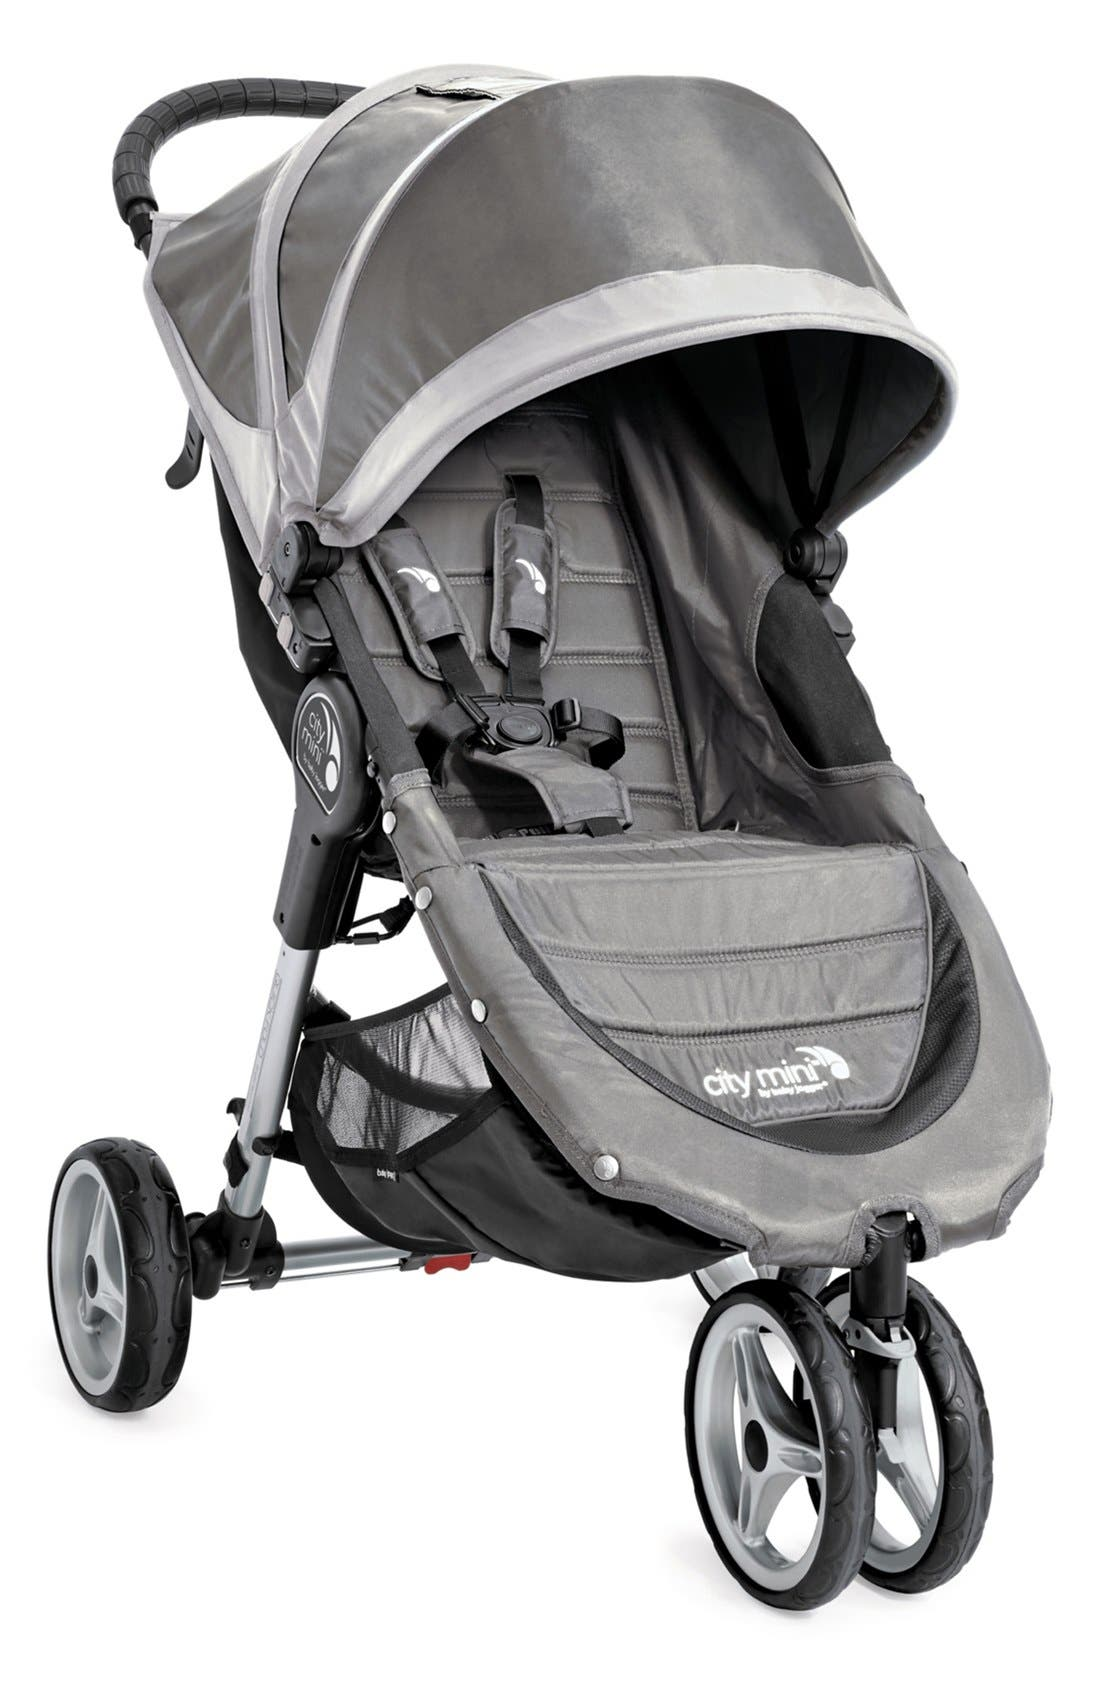 Alternate Image 1 Selected - Baby Jogger 'City Mini®' Single Stroller